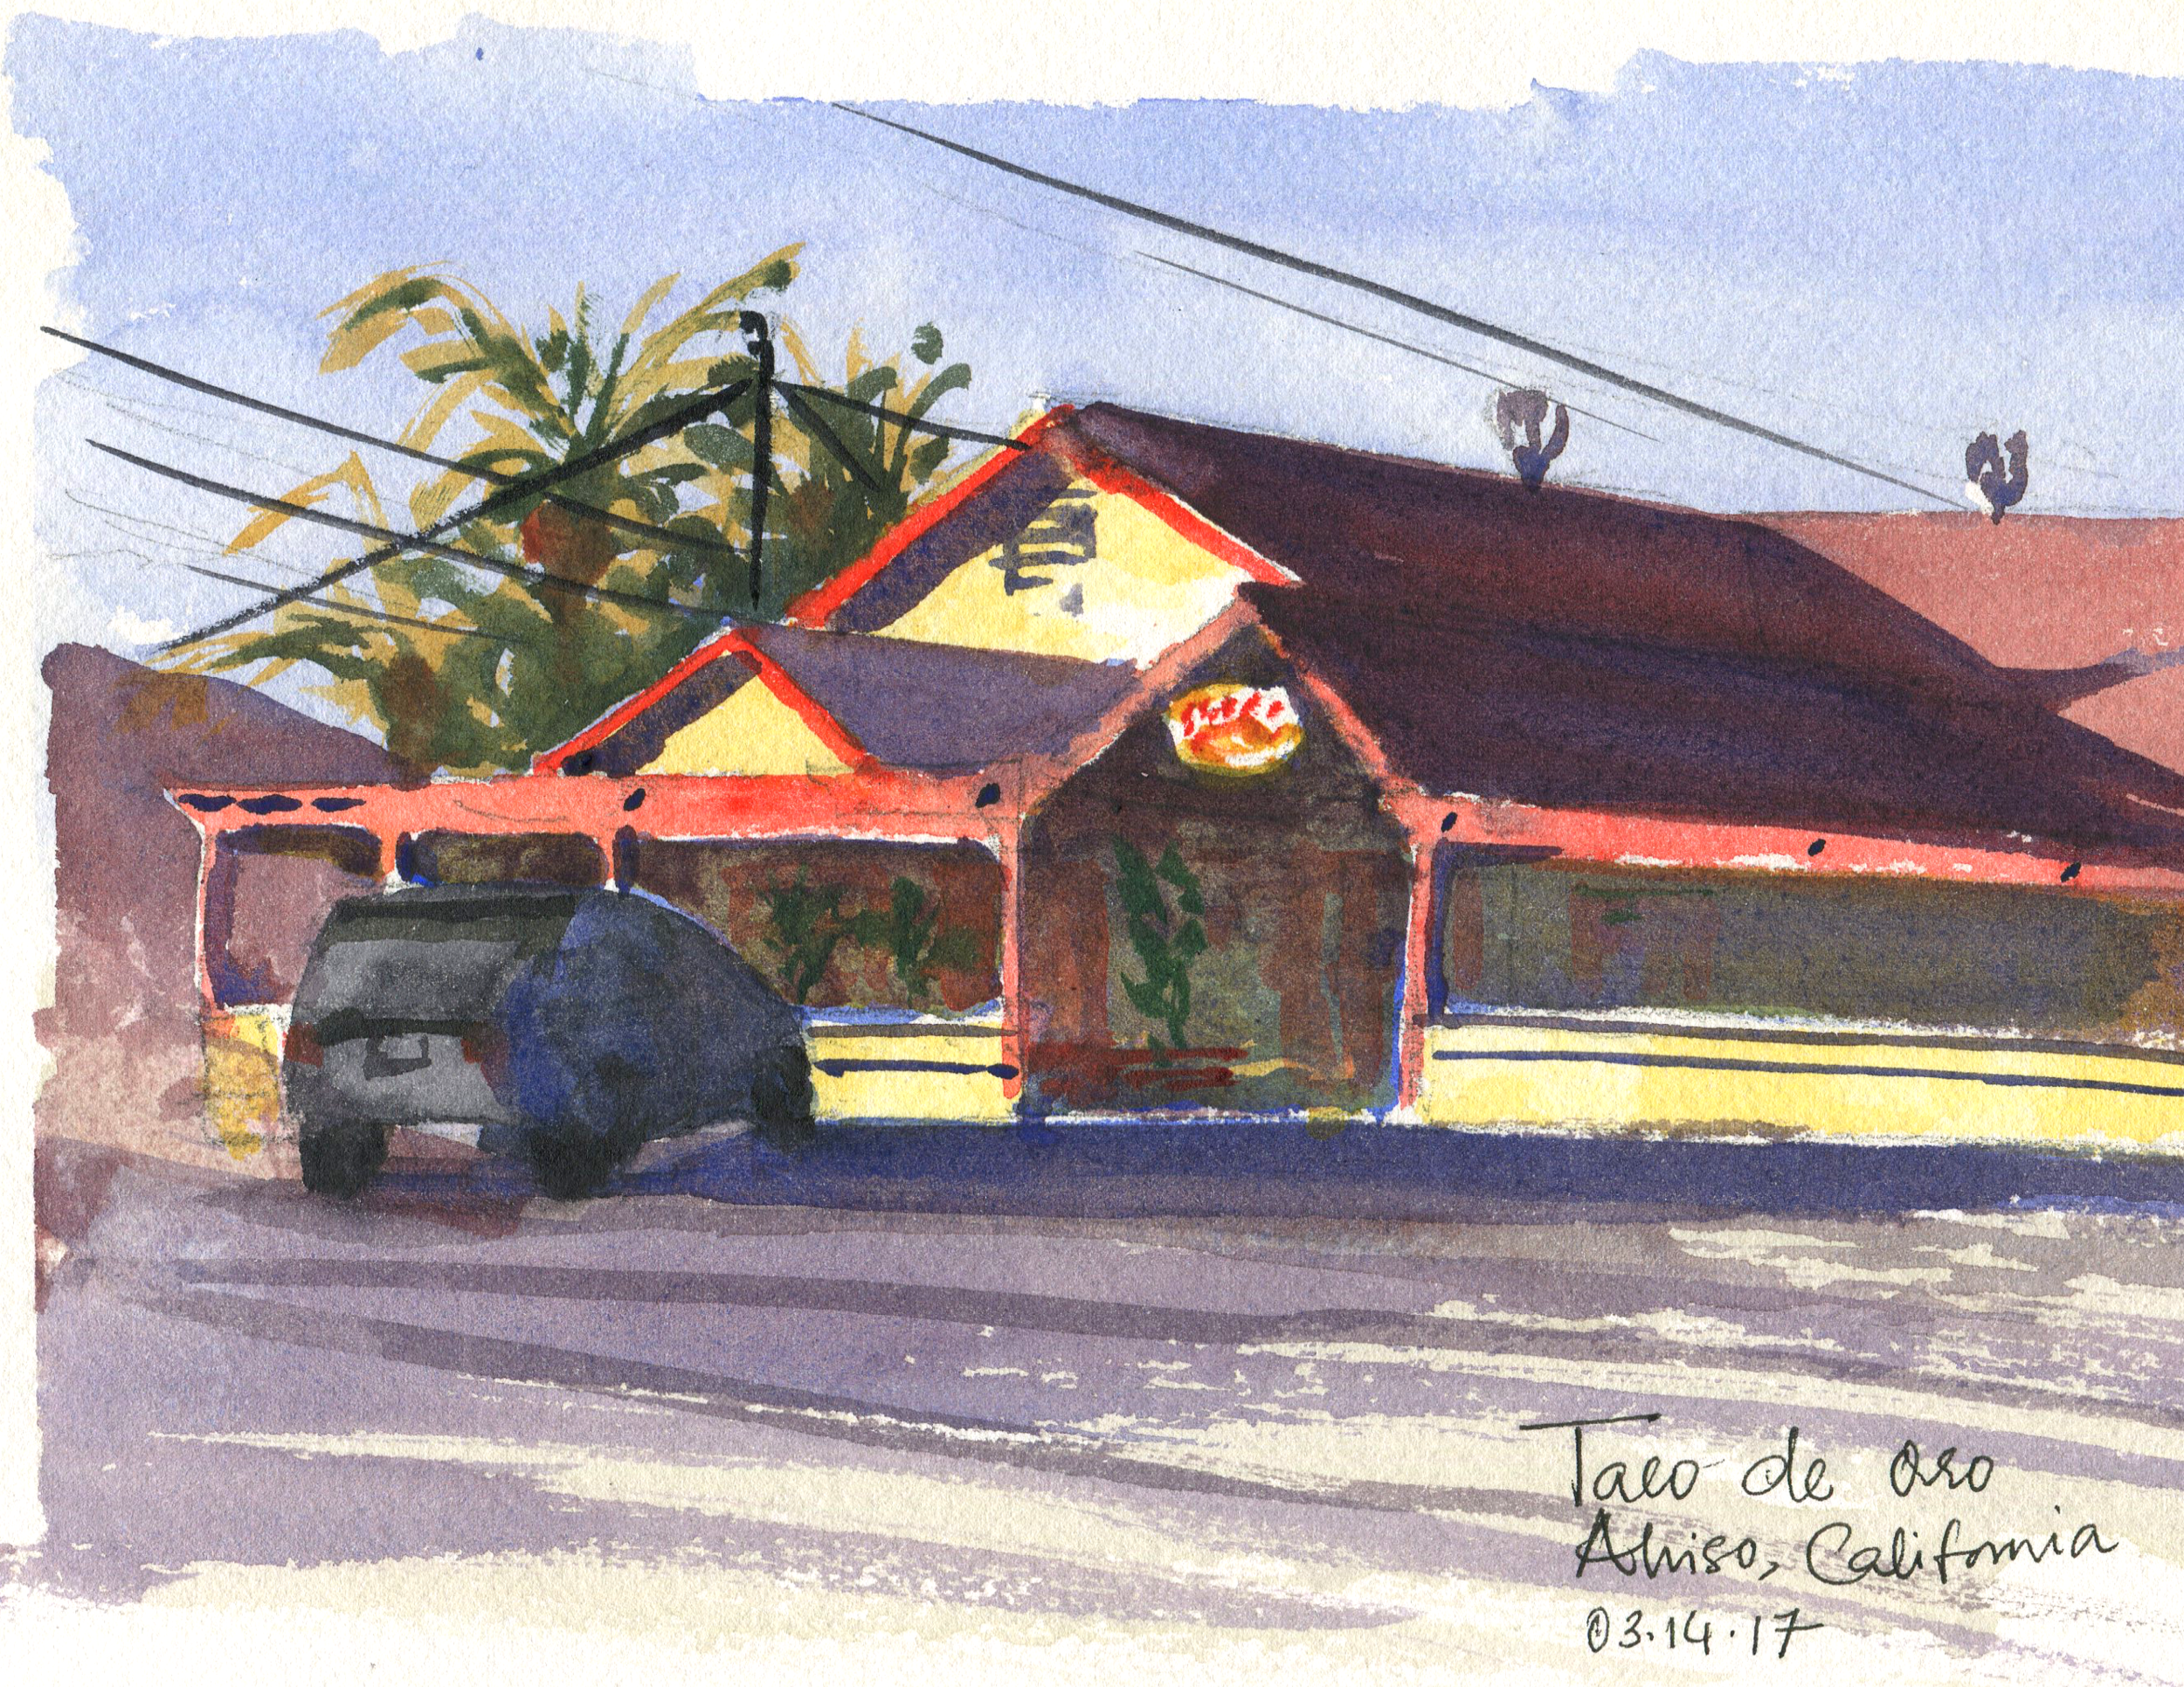 Taco de oro in watercolor